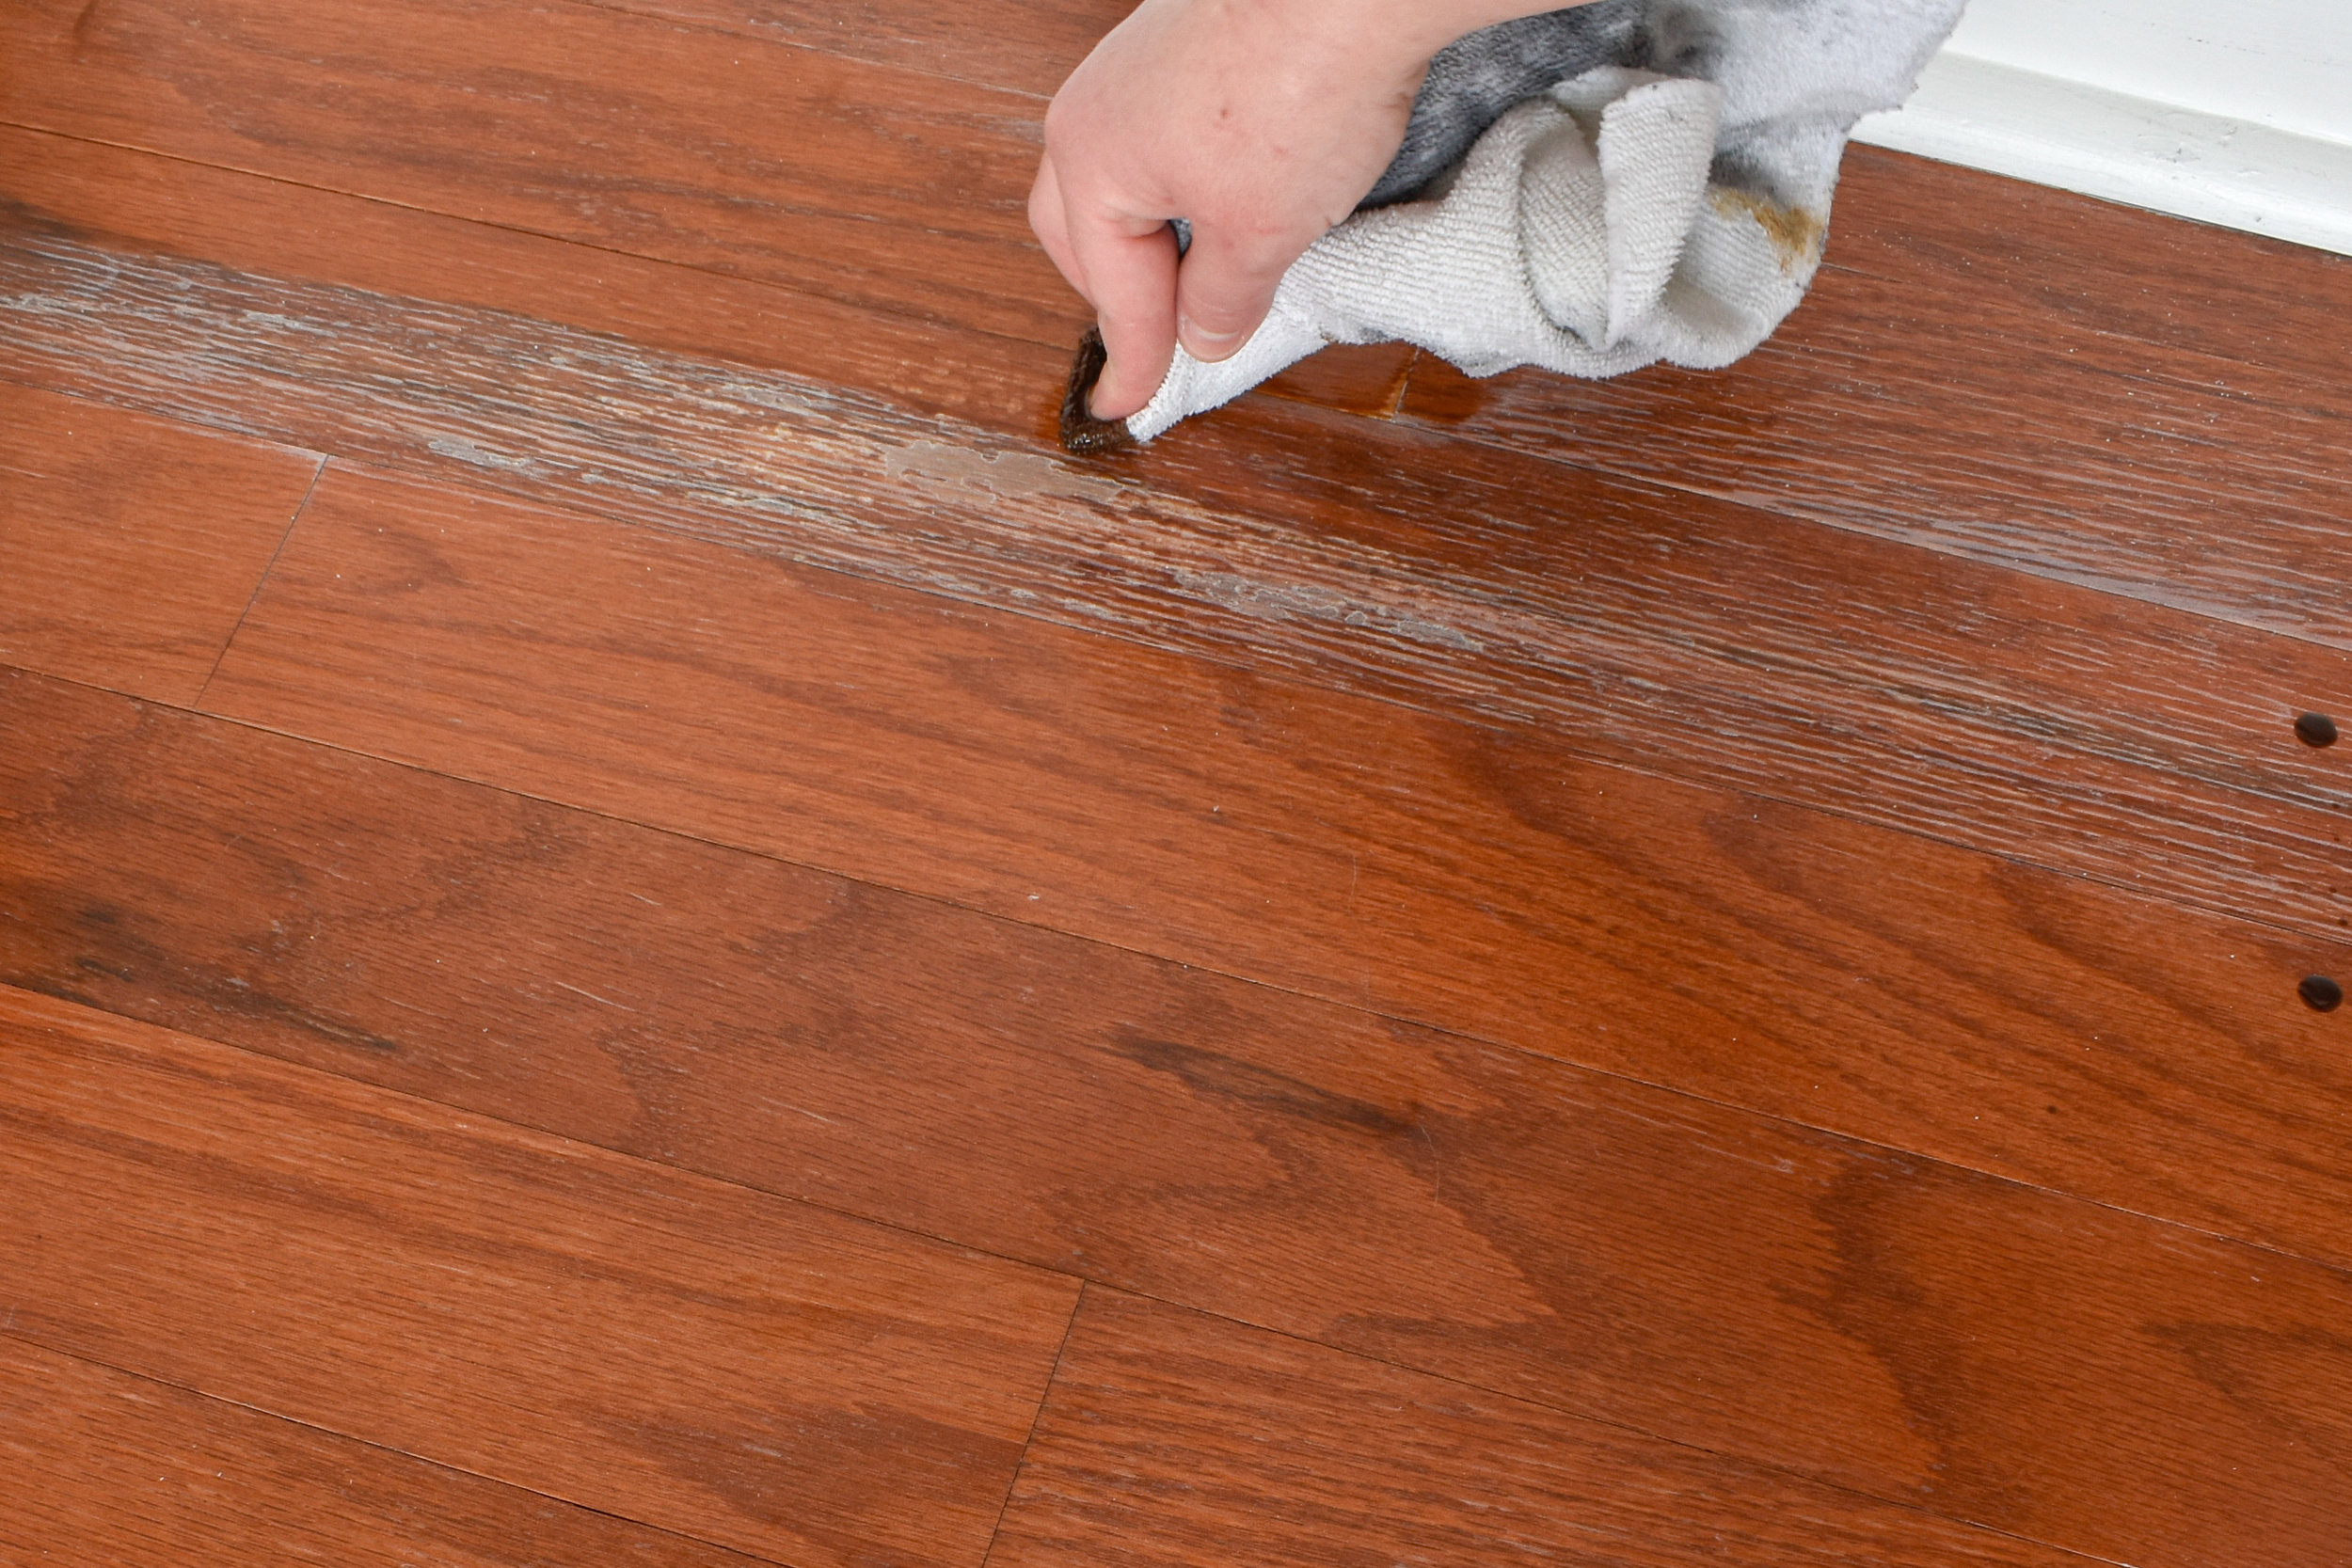 Fixing Water Damage on Prefinished Wood Floors